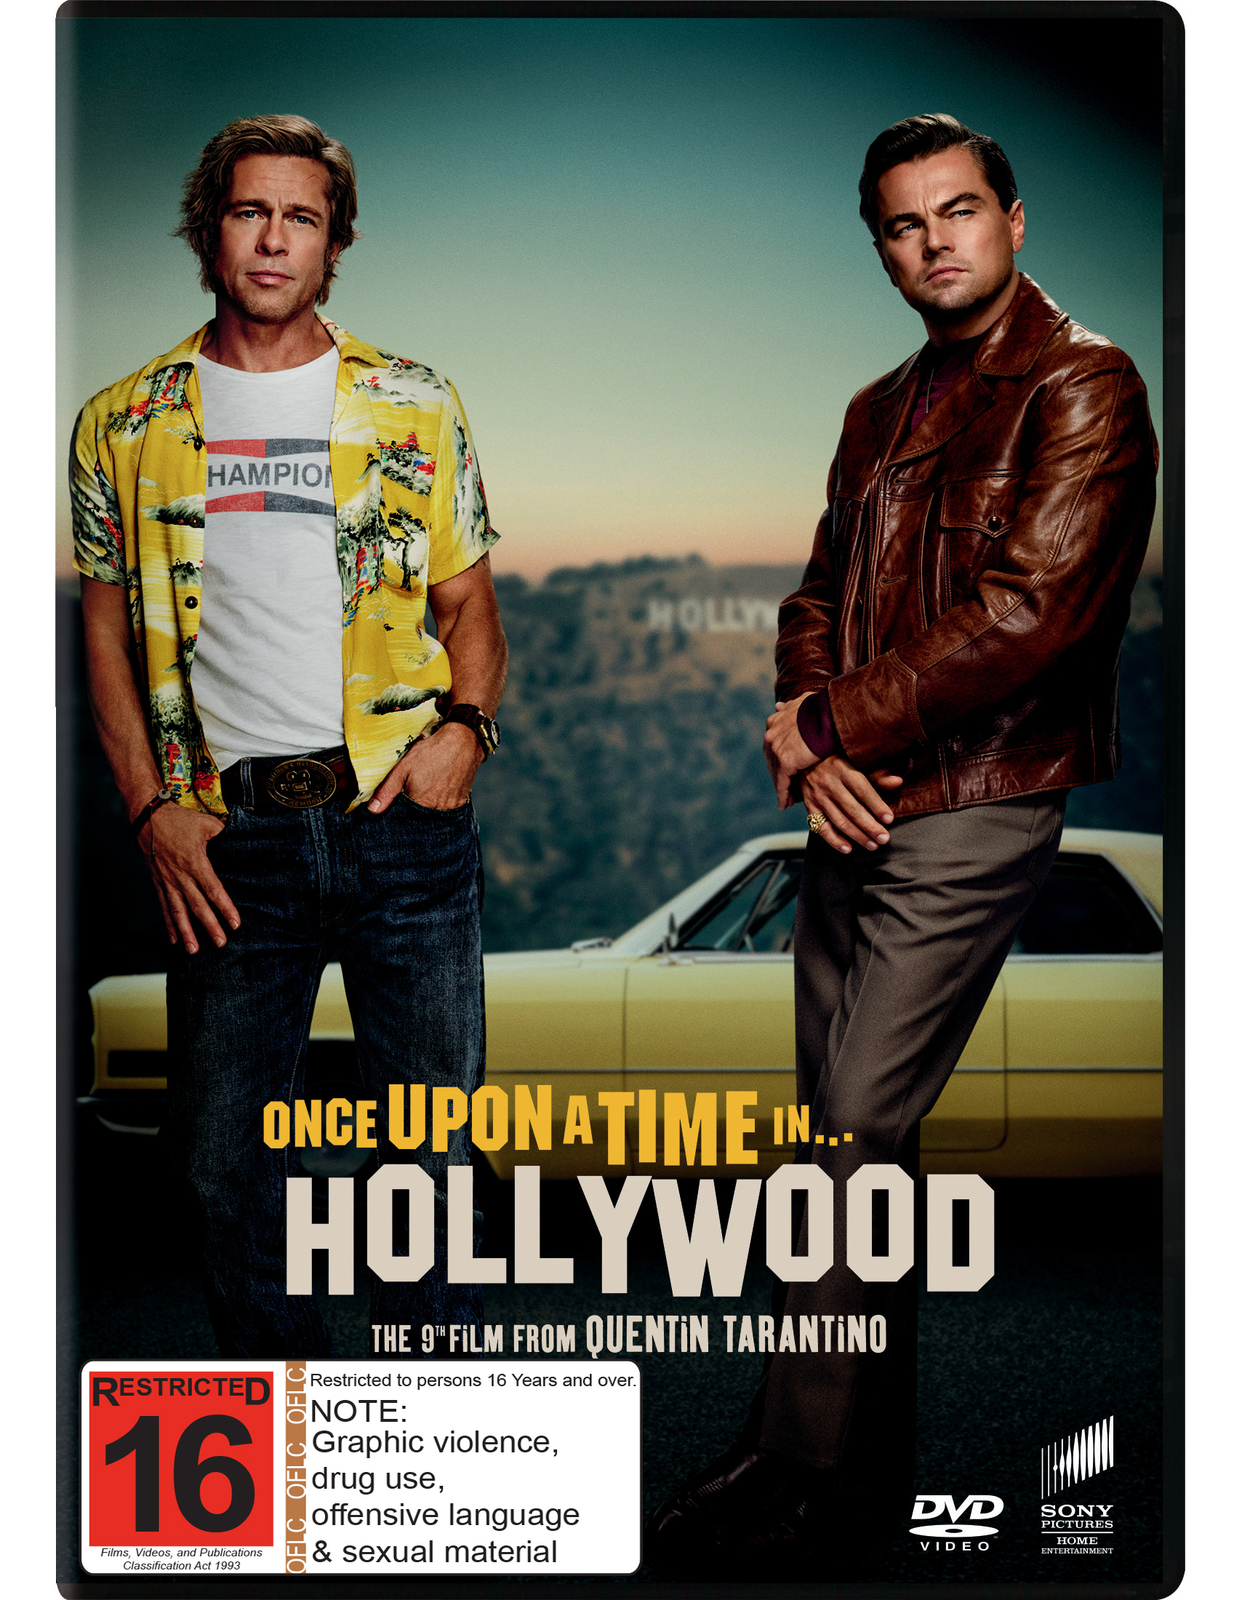 Once Upon a Time in Hollywood on DVD image